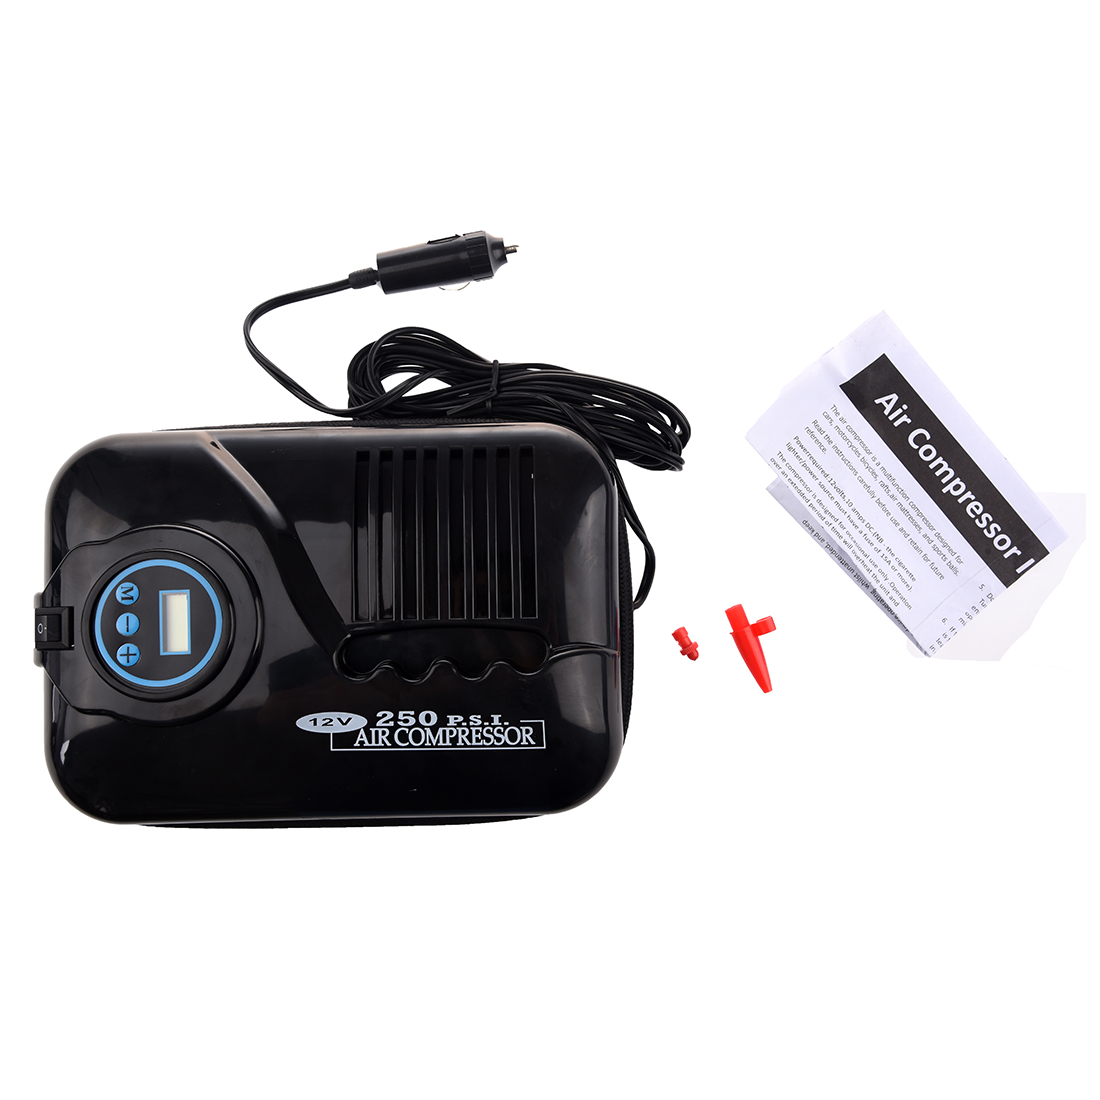 Black Digital Portable Electronic Tyre Air Compressor 12V Car Tire Inflator Digital Tyre Inflating Pump 250PSI portable 12v 250psi car tire inflator pump auto car pump air compressor car motor tyre motorcycle car accessories